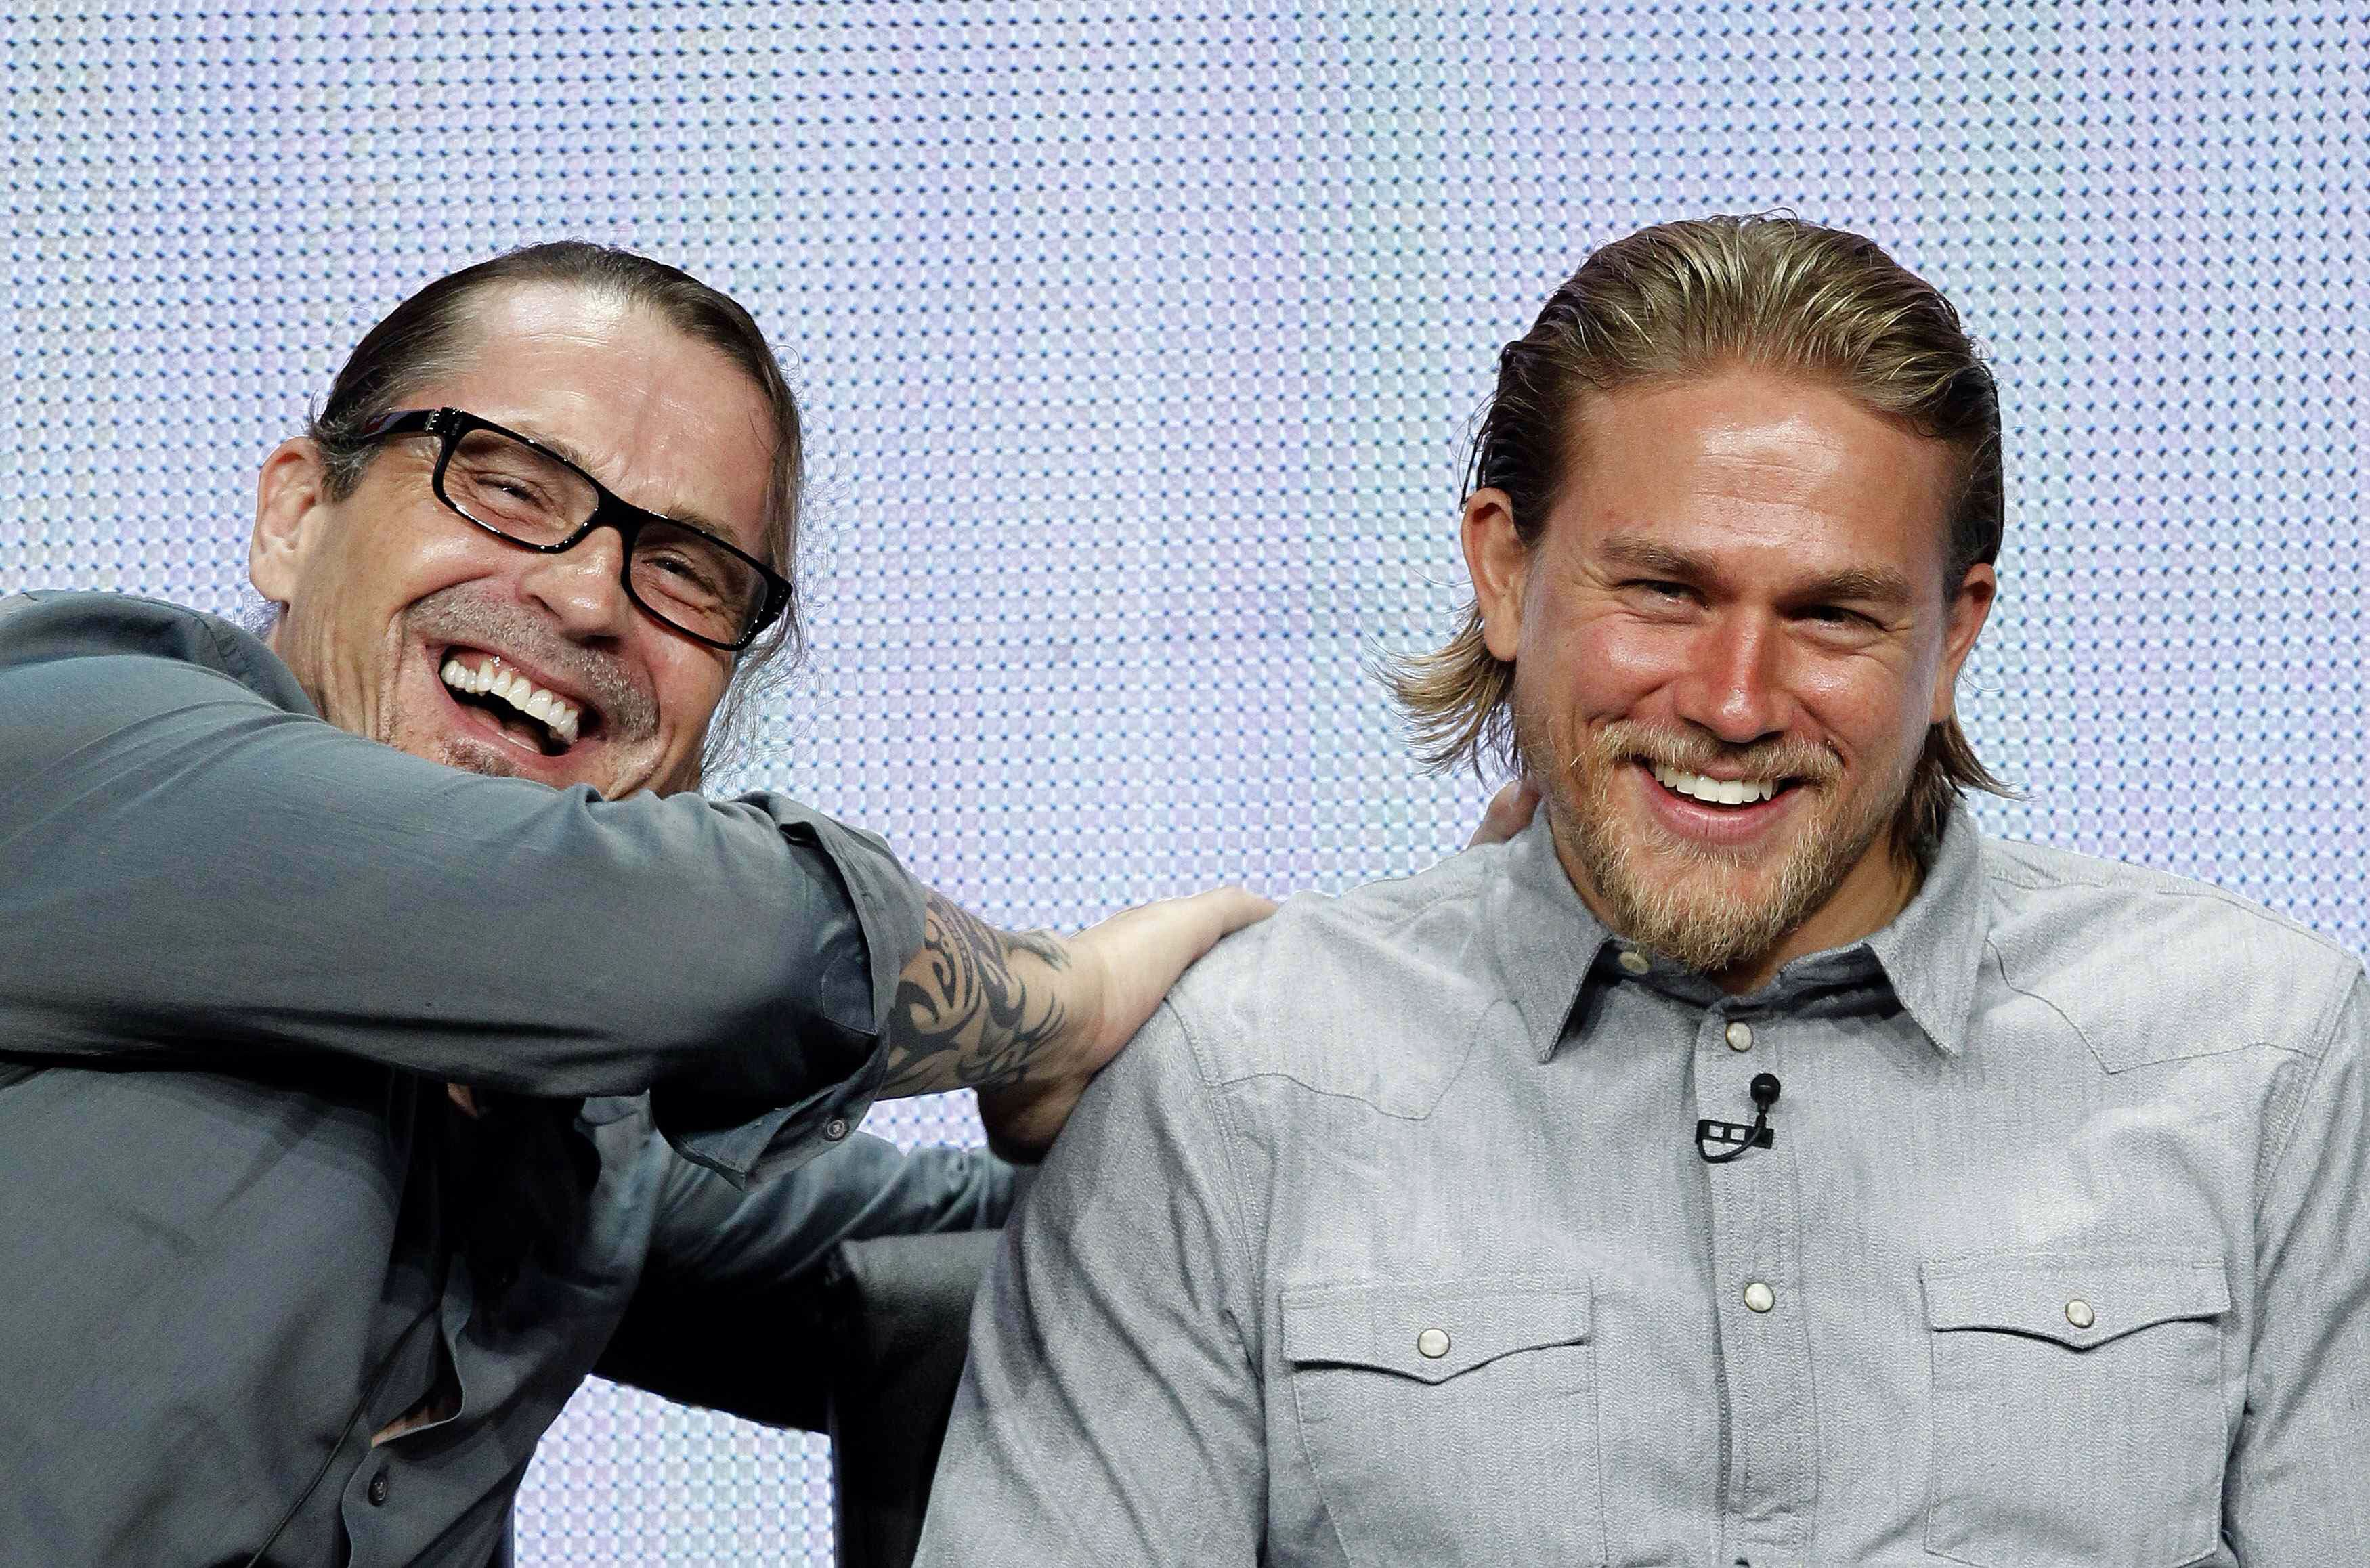 I Need More Pictures Of Charlie Smiling Because Season 7 Is Going To Be Really Hard Sons Of Anarchy Charlie Hunnam Sons Of Anarchy Cast